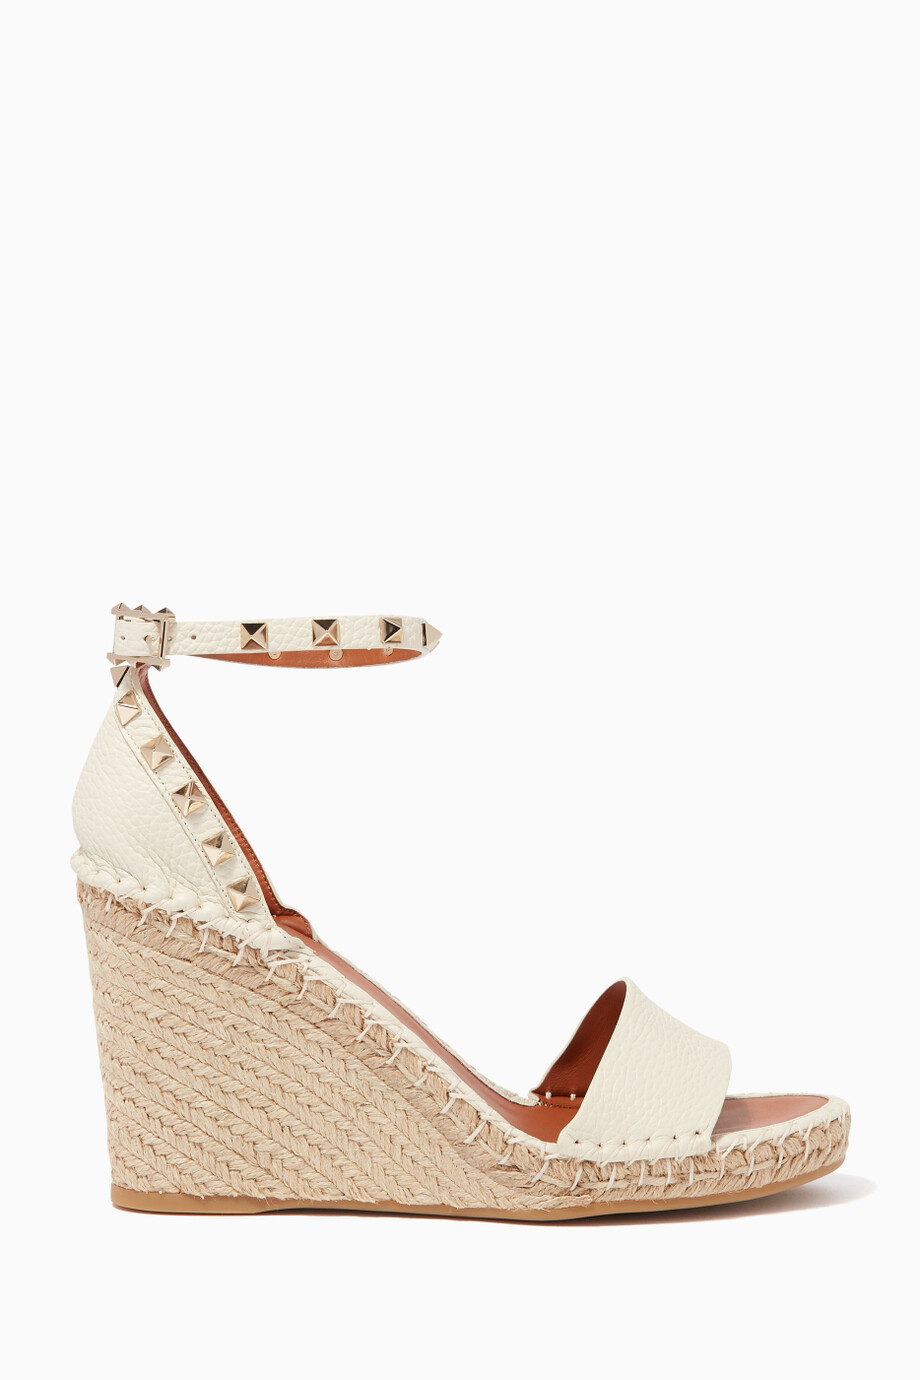 0b765ae3b4c Shop Valentino Neutral Off-White Rockstud Leather Wedge Sandals for ...